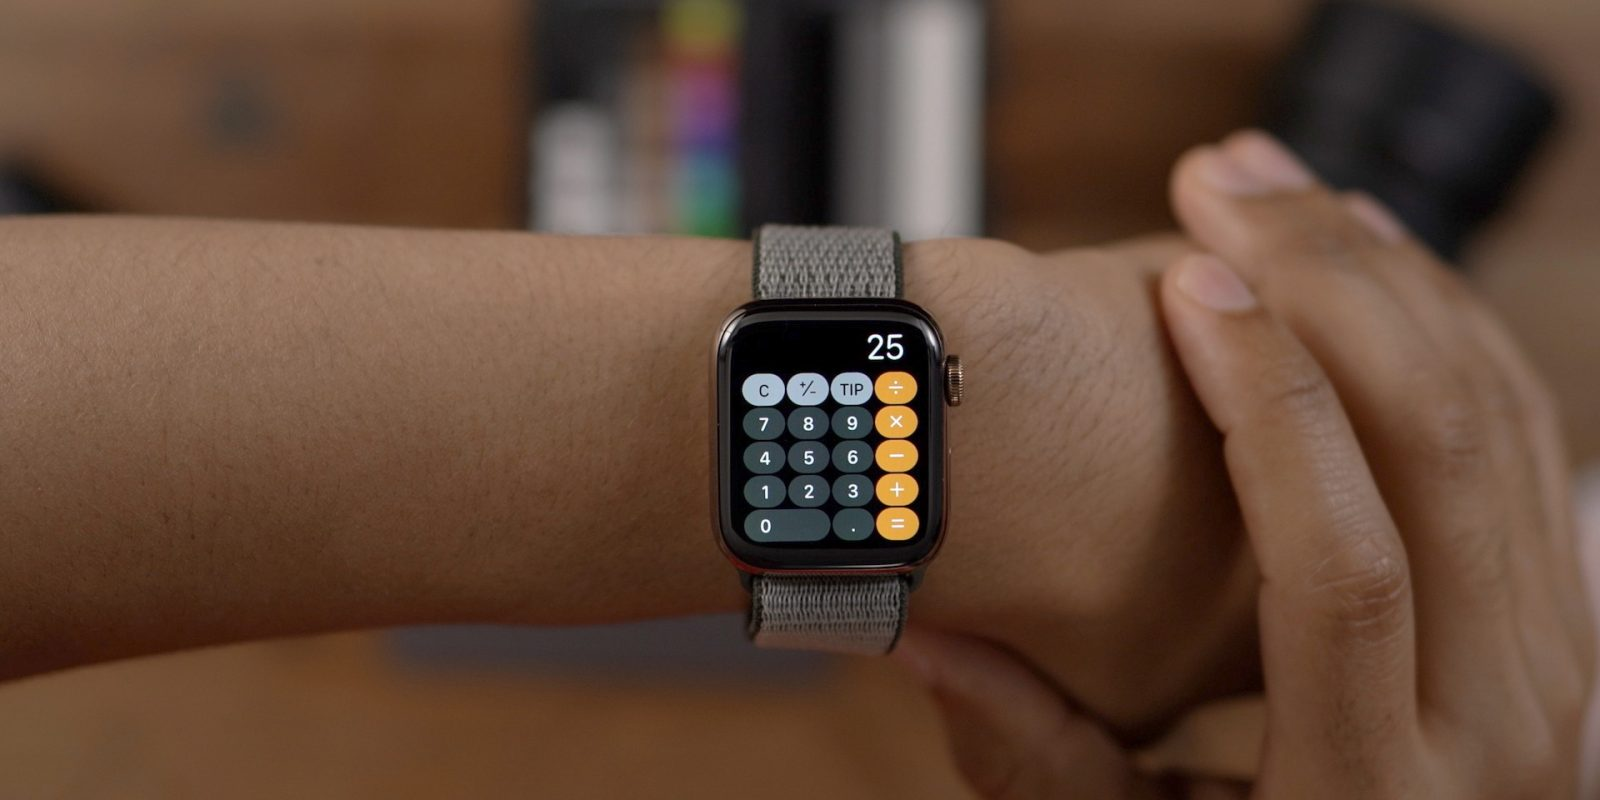 watchOS 6.0.1 for Apple Watch brings watch face improvements, more